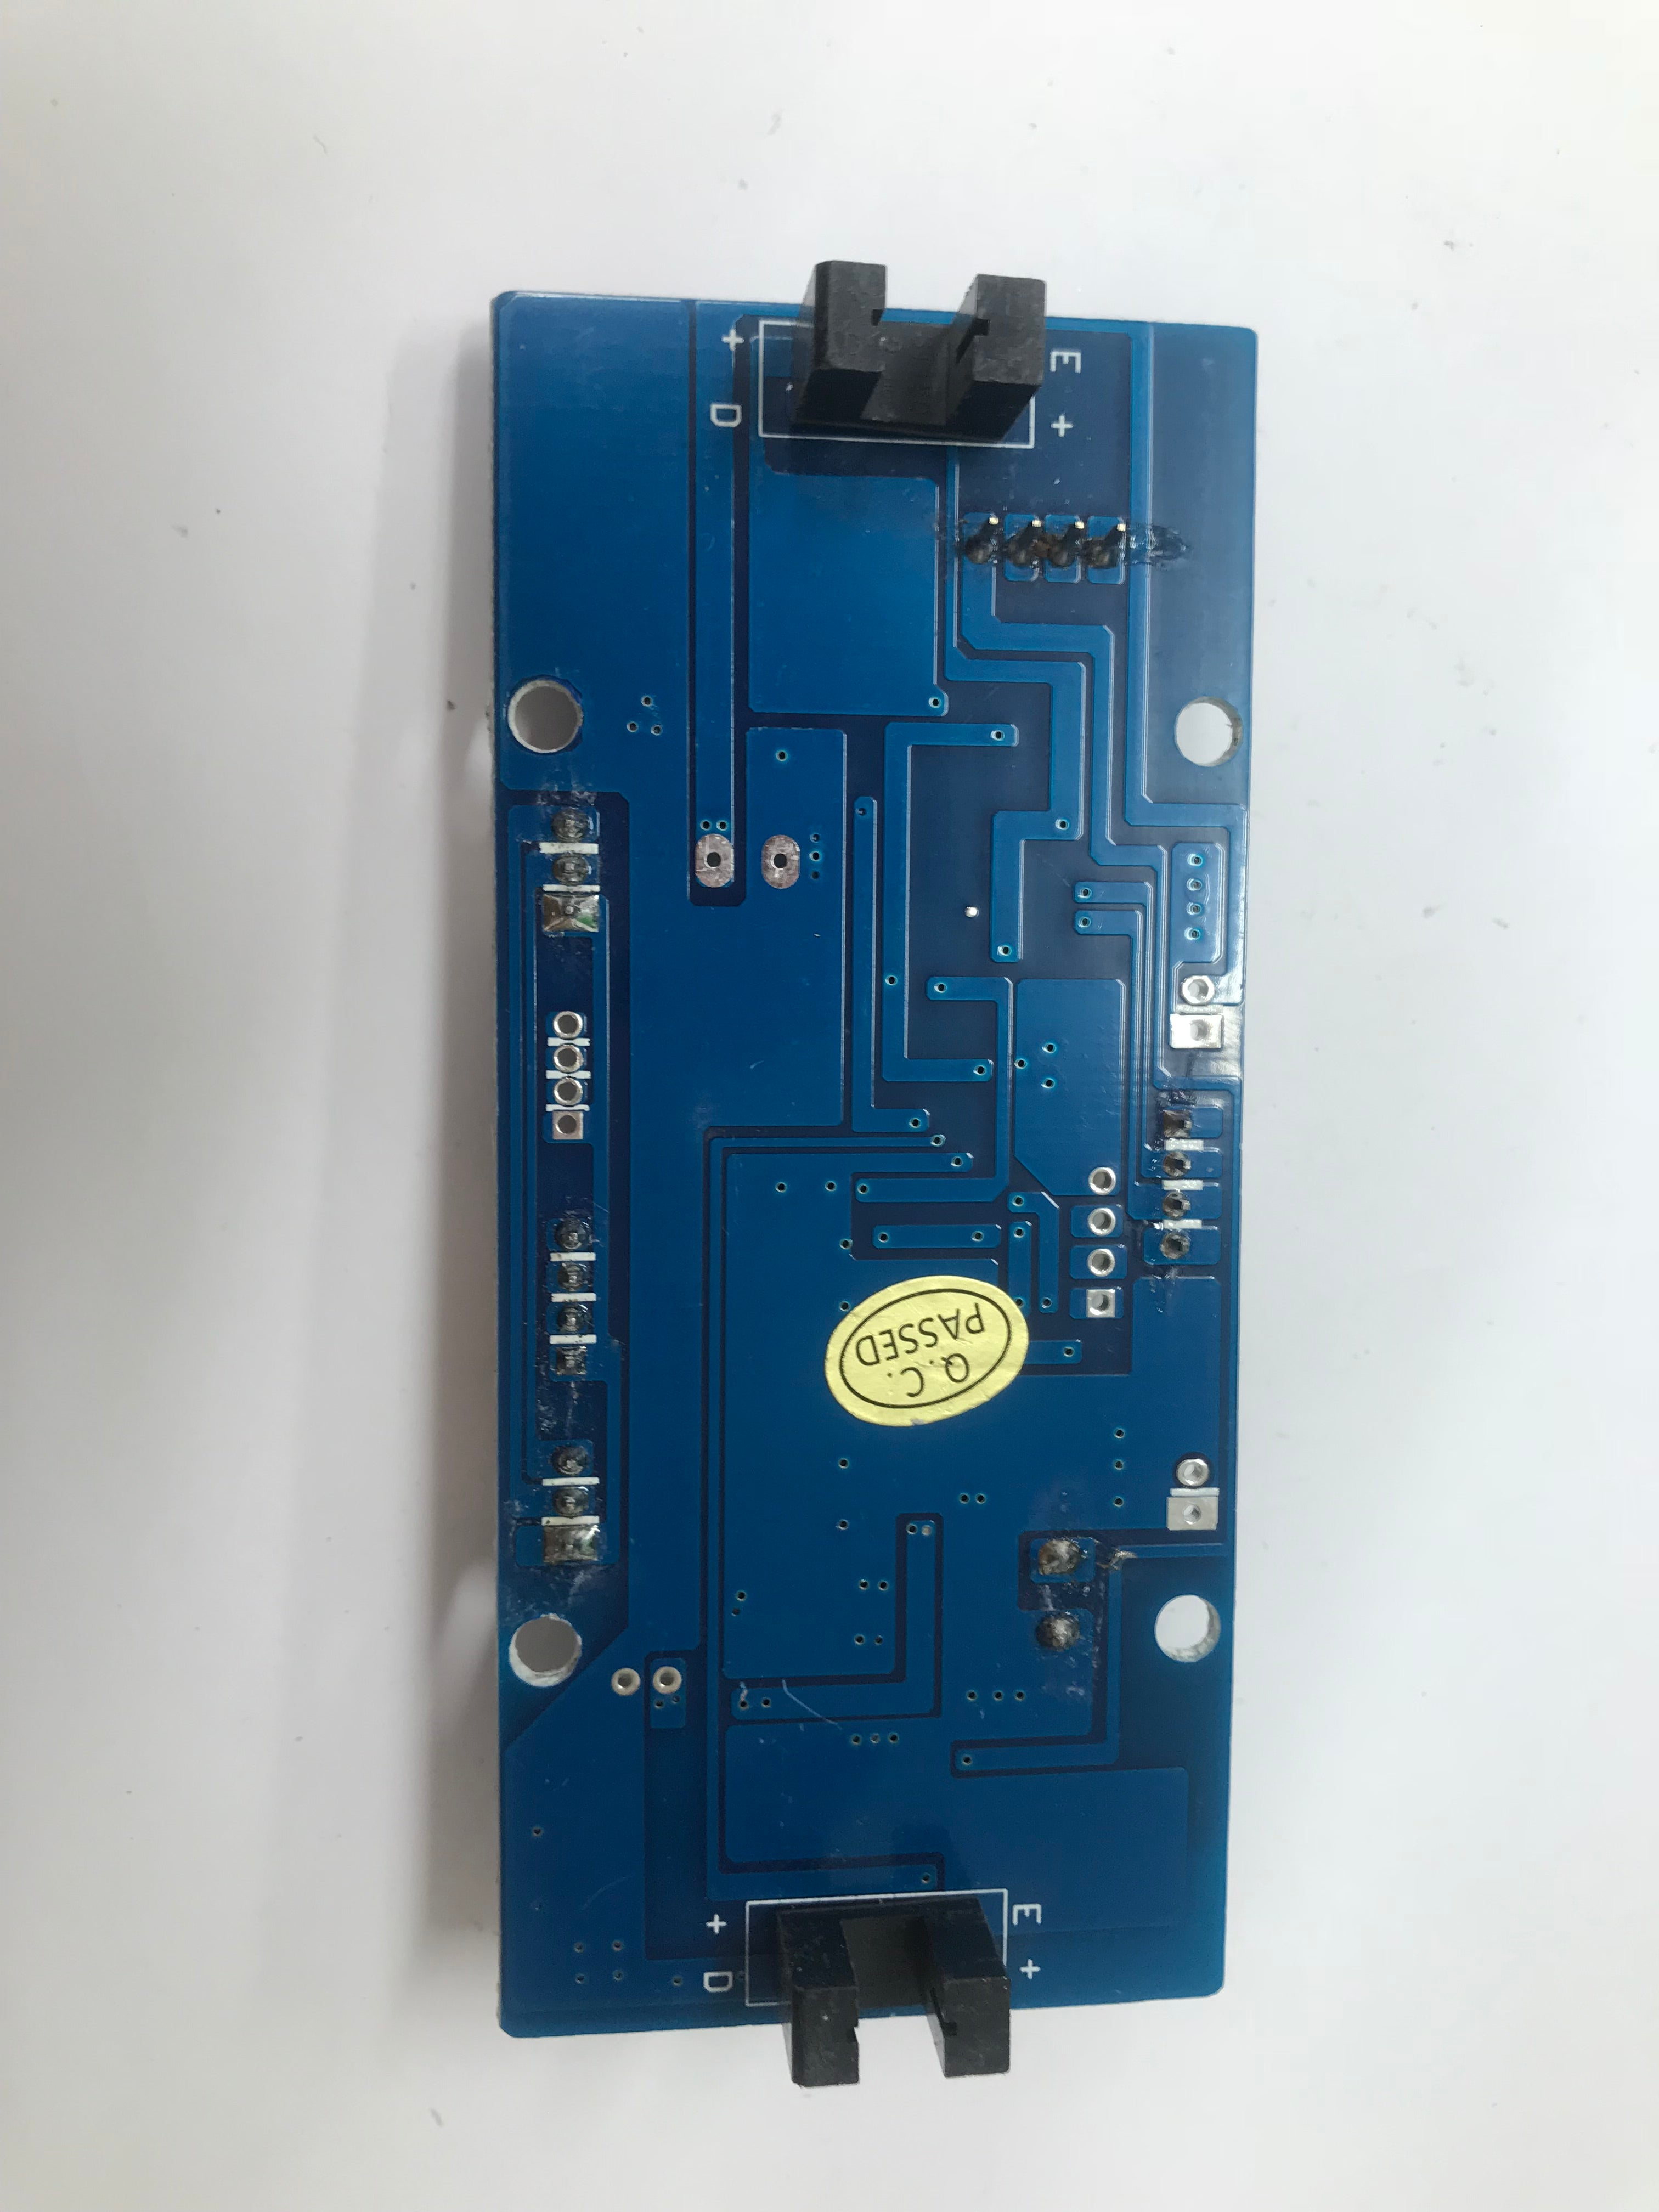 GYRO CIRCUIT BOARD (SOCKET TYPE) - ZFY/ETC/ZDV2 20160826 + REMOTE AERIAL